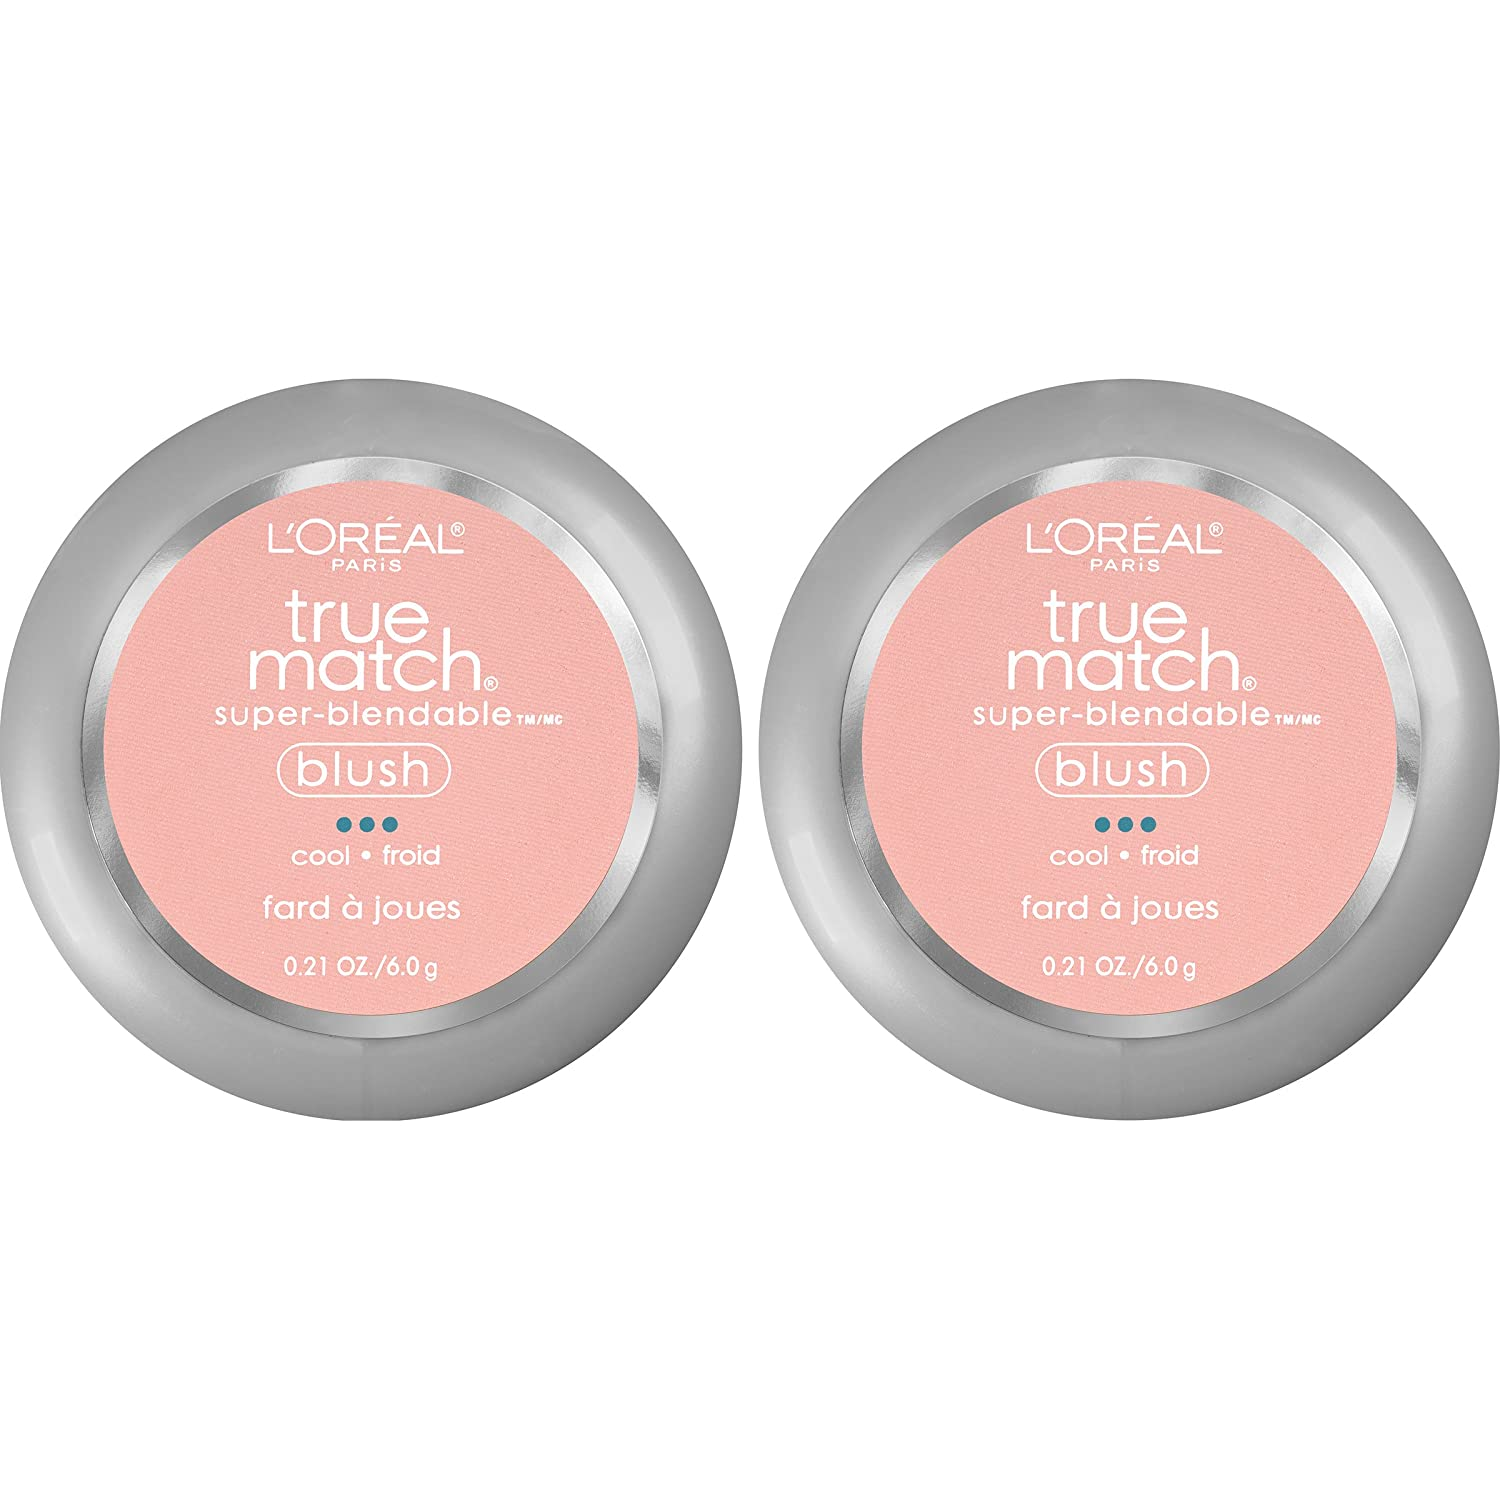 L'Oréal Paris True Match Super-Blendable Blush, Rosy Outlook, 0.21 oz. L' Oreal Paris Cosmetics